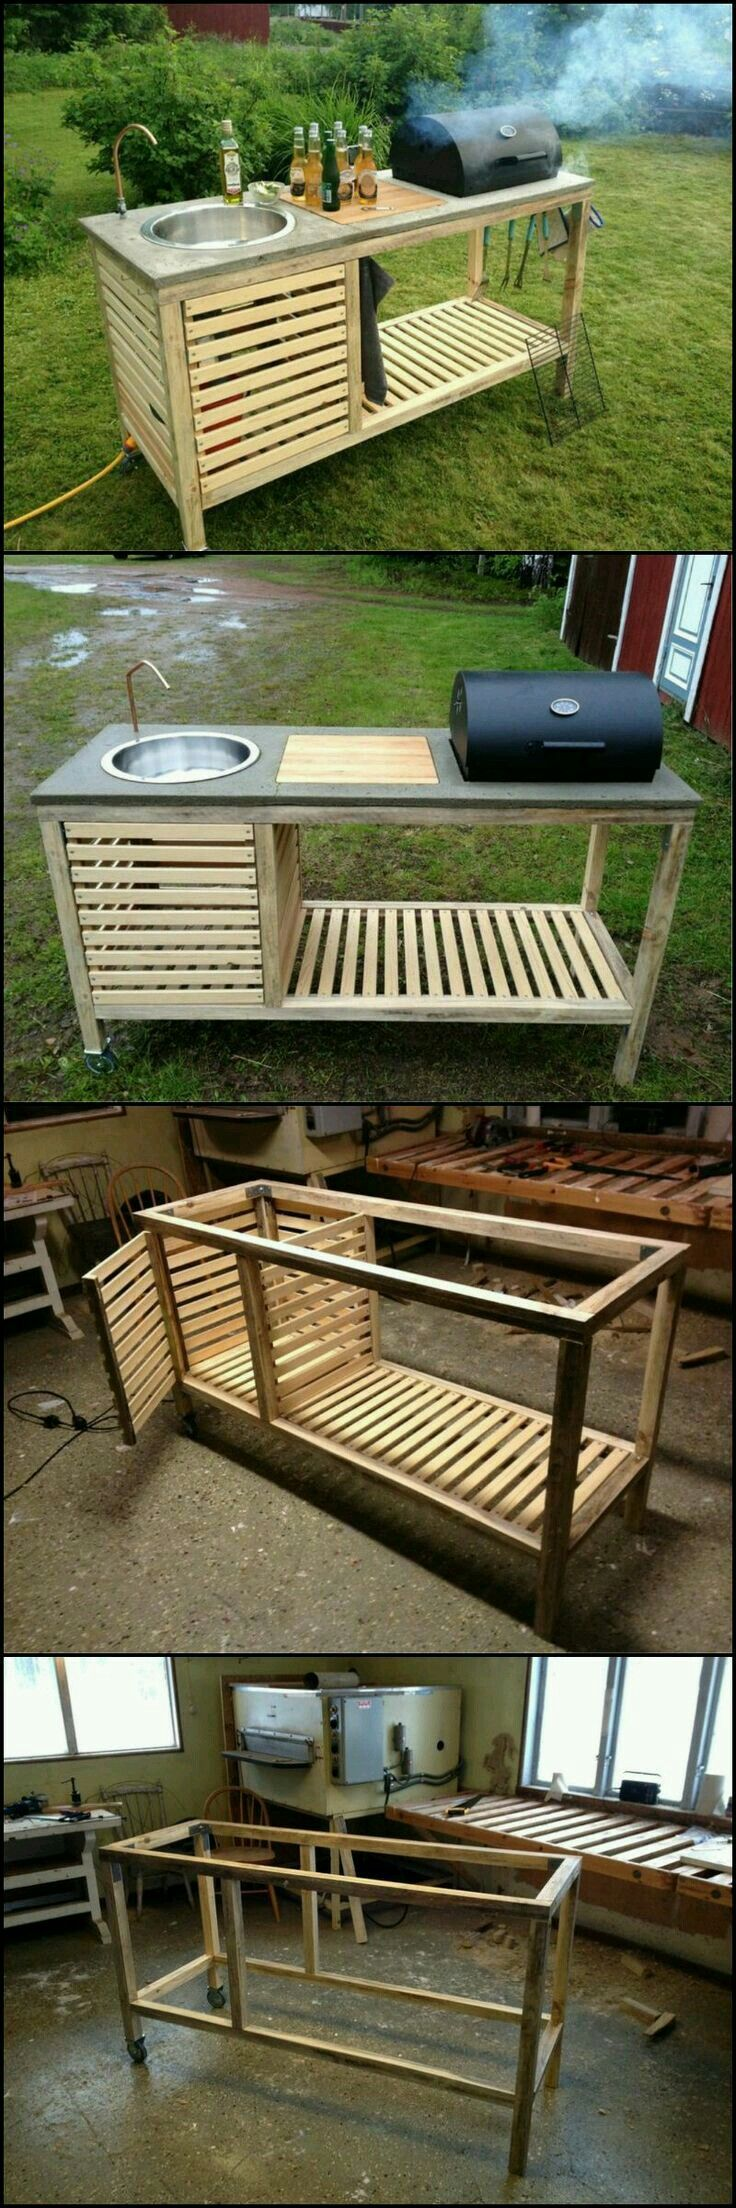 This is a good idea and with some small modifications for personal taste and or practicality, it would be perfect!